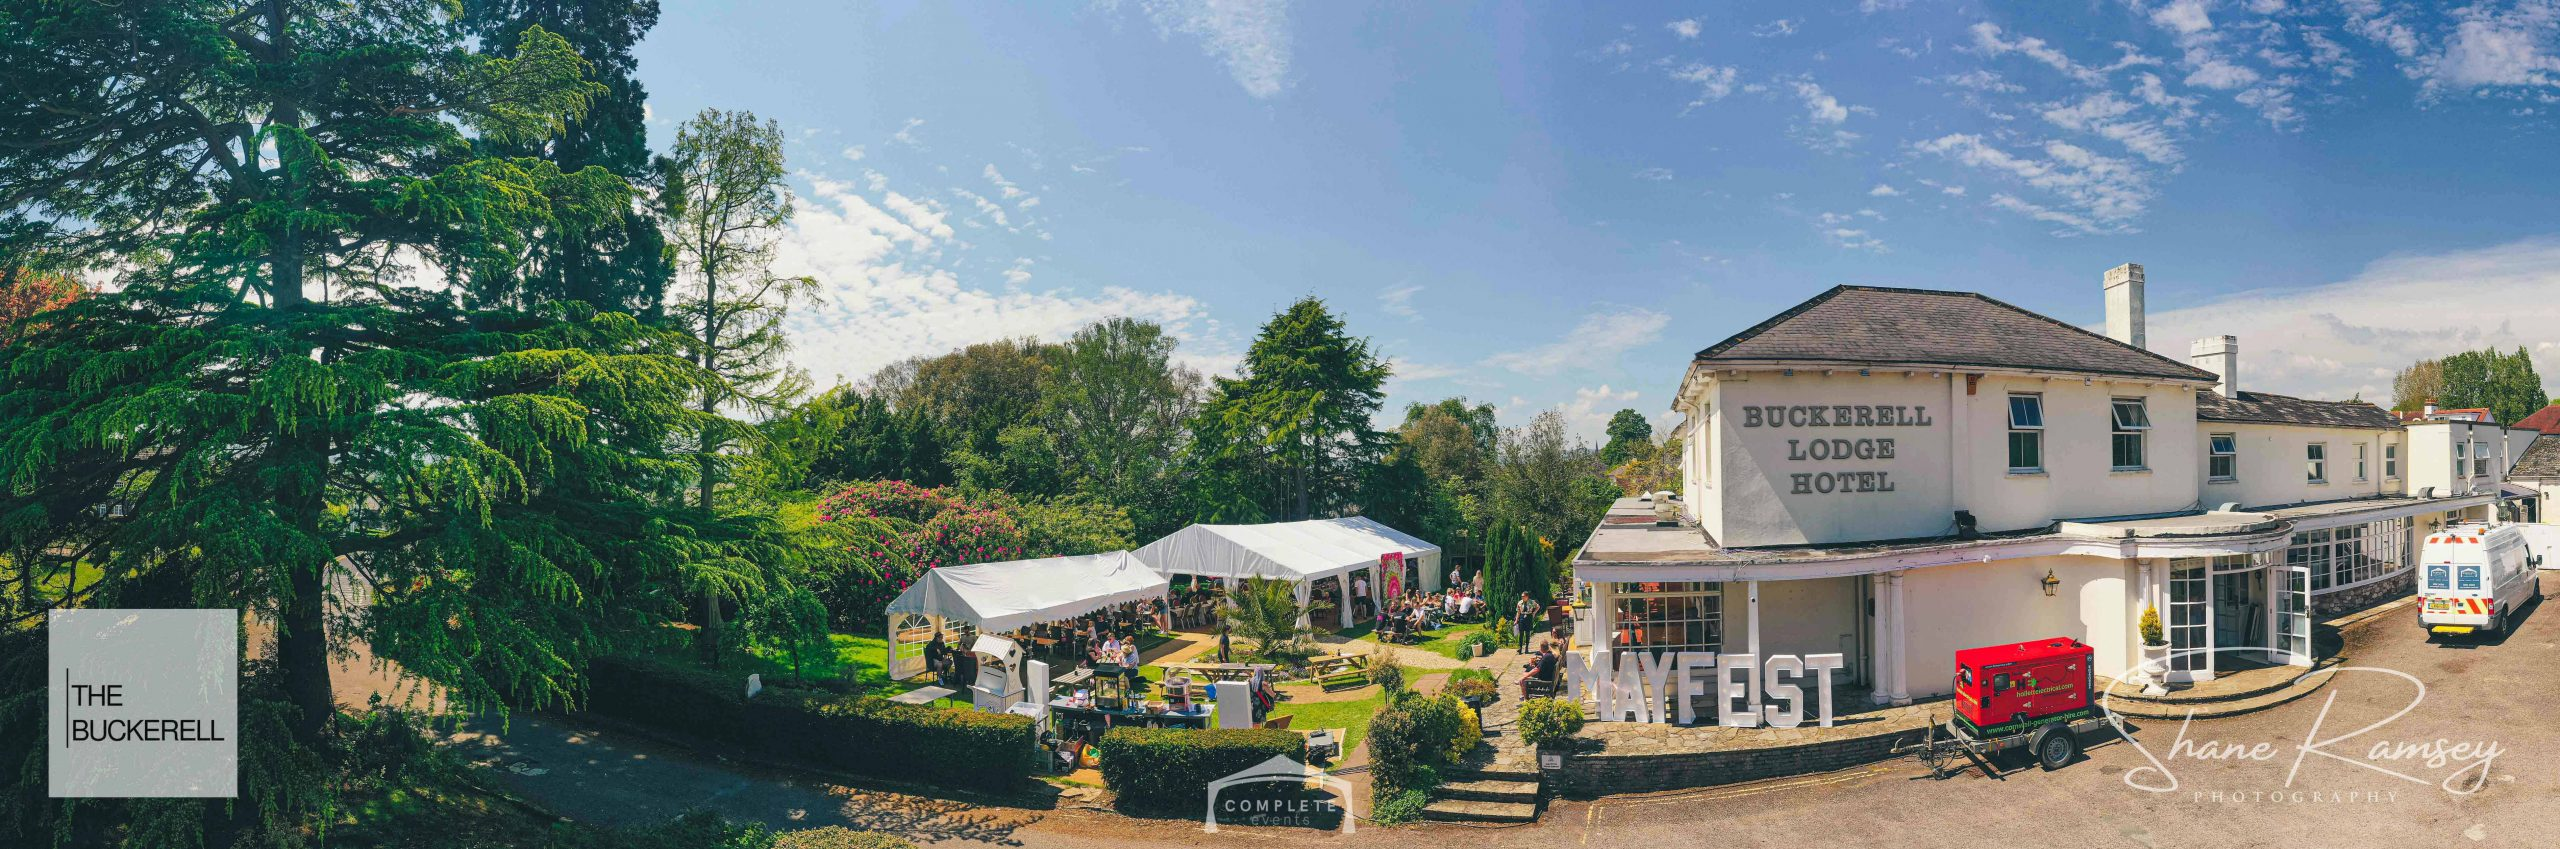 party marquee hire exeter